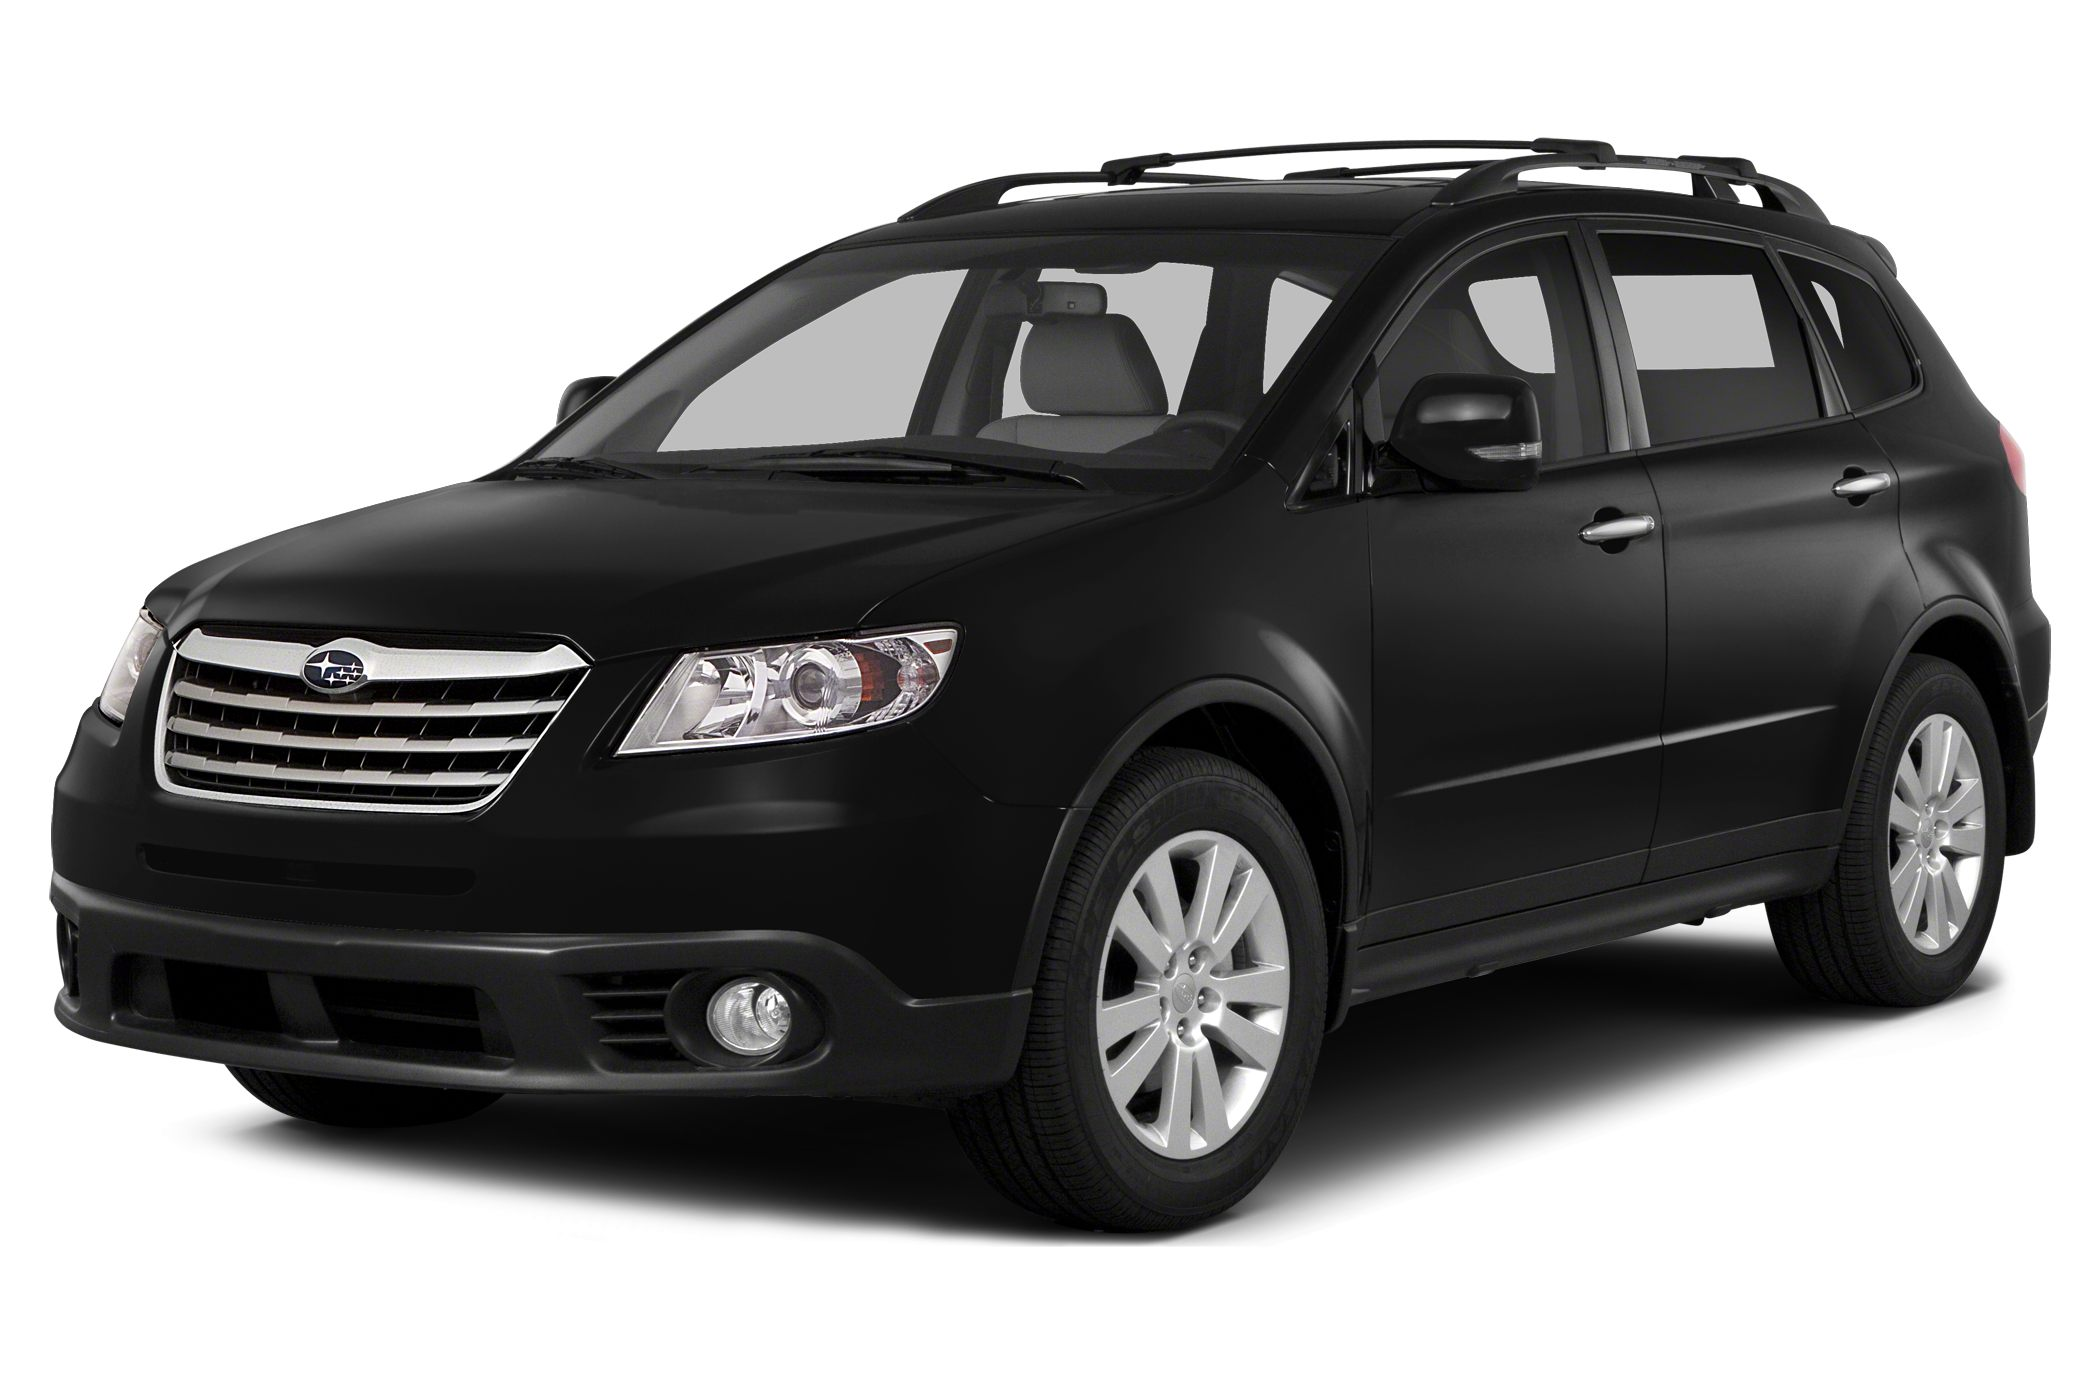 2014 Subaru Tribeca 3.6R Limited SUV for sale in Ukiah for $0 with 8,785 miles